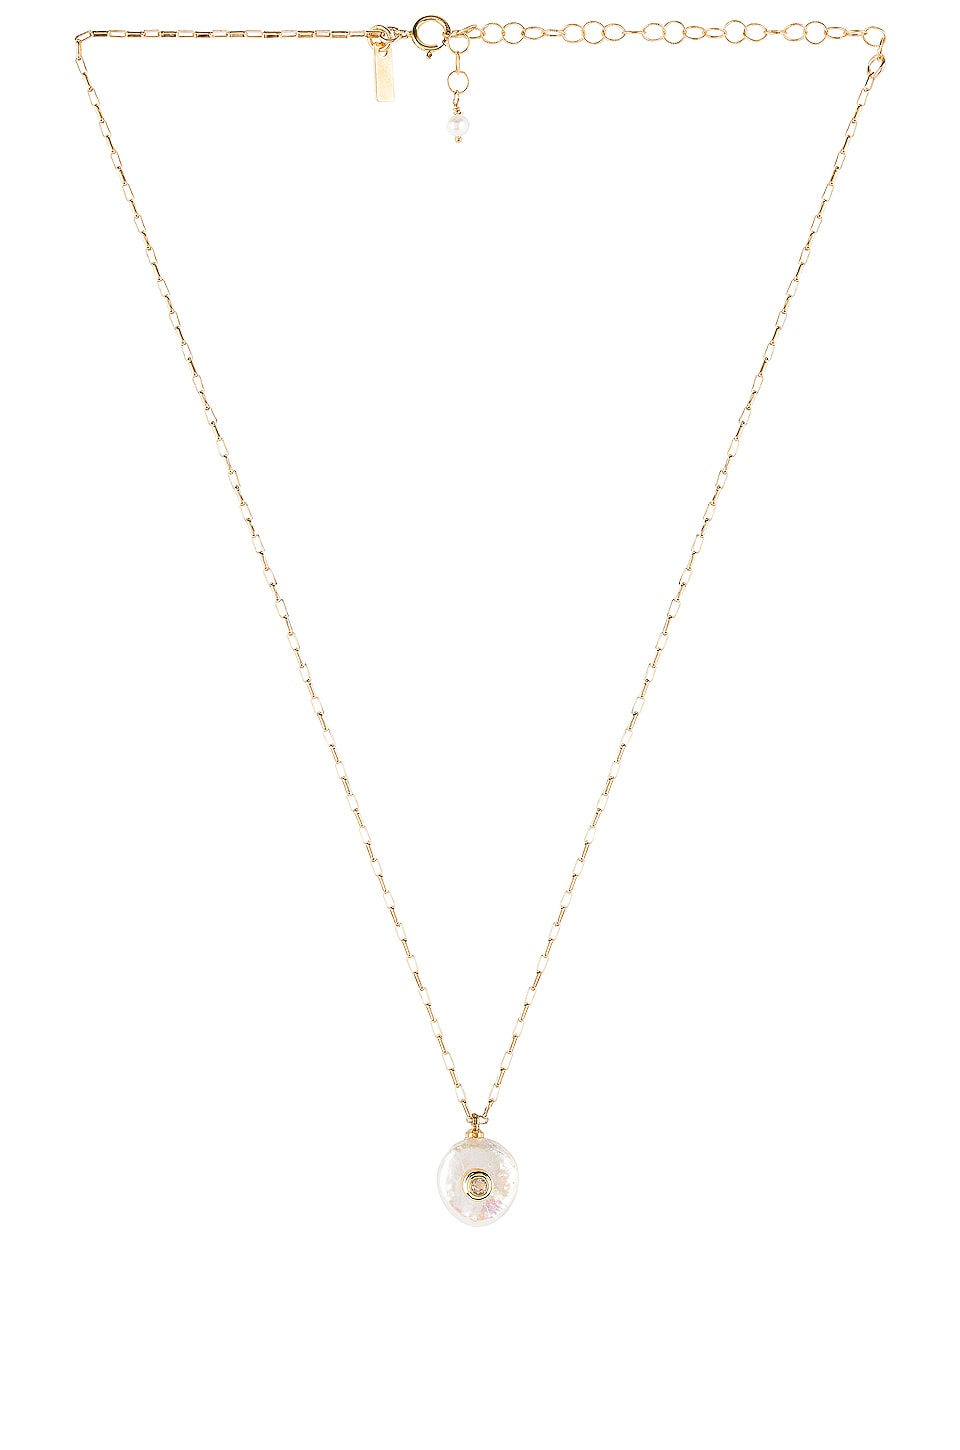 Natalie B Jewelry Pearl Of Love Necklace in Gold